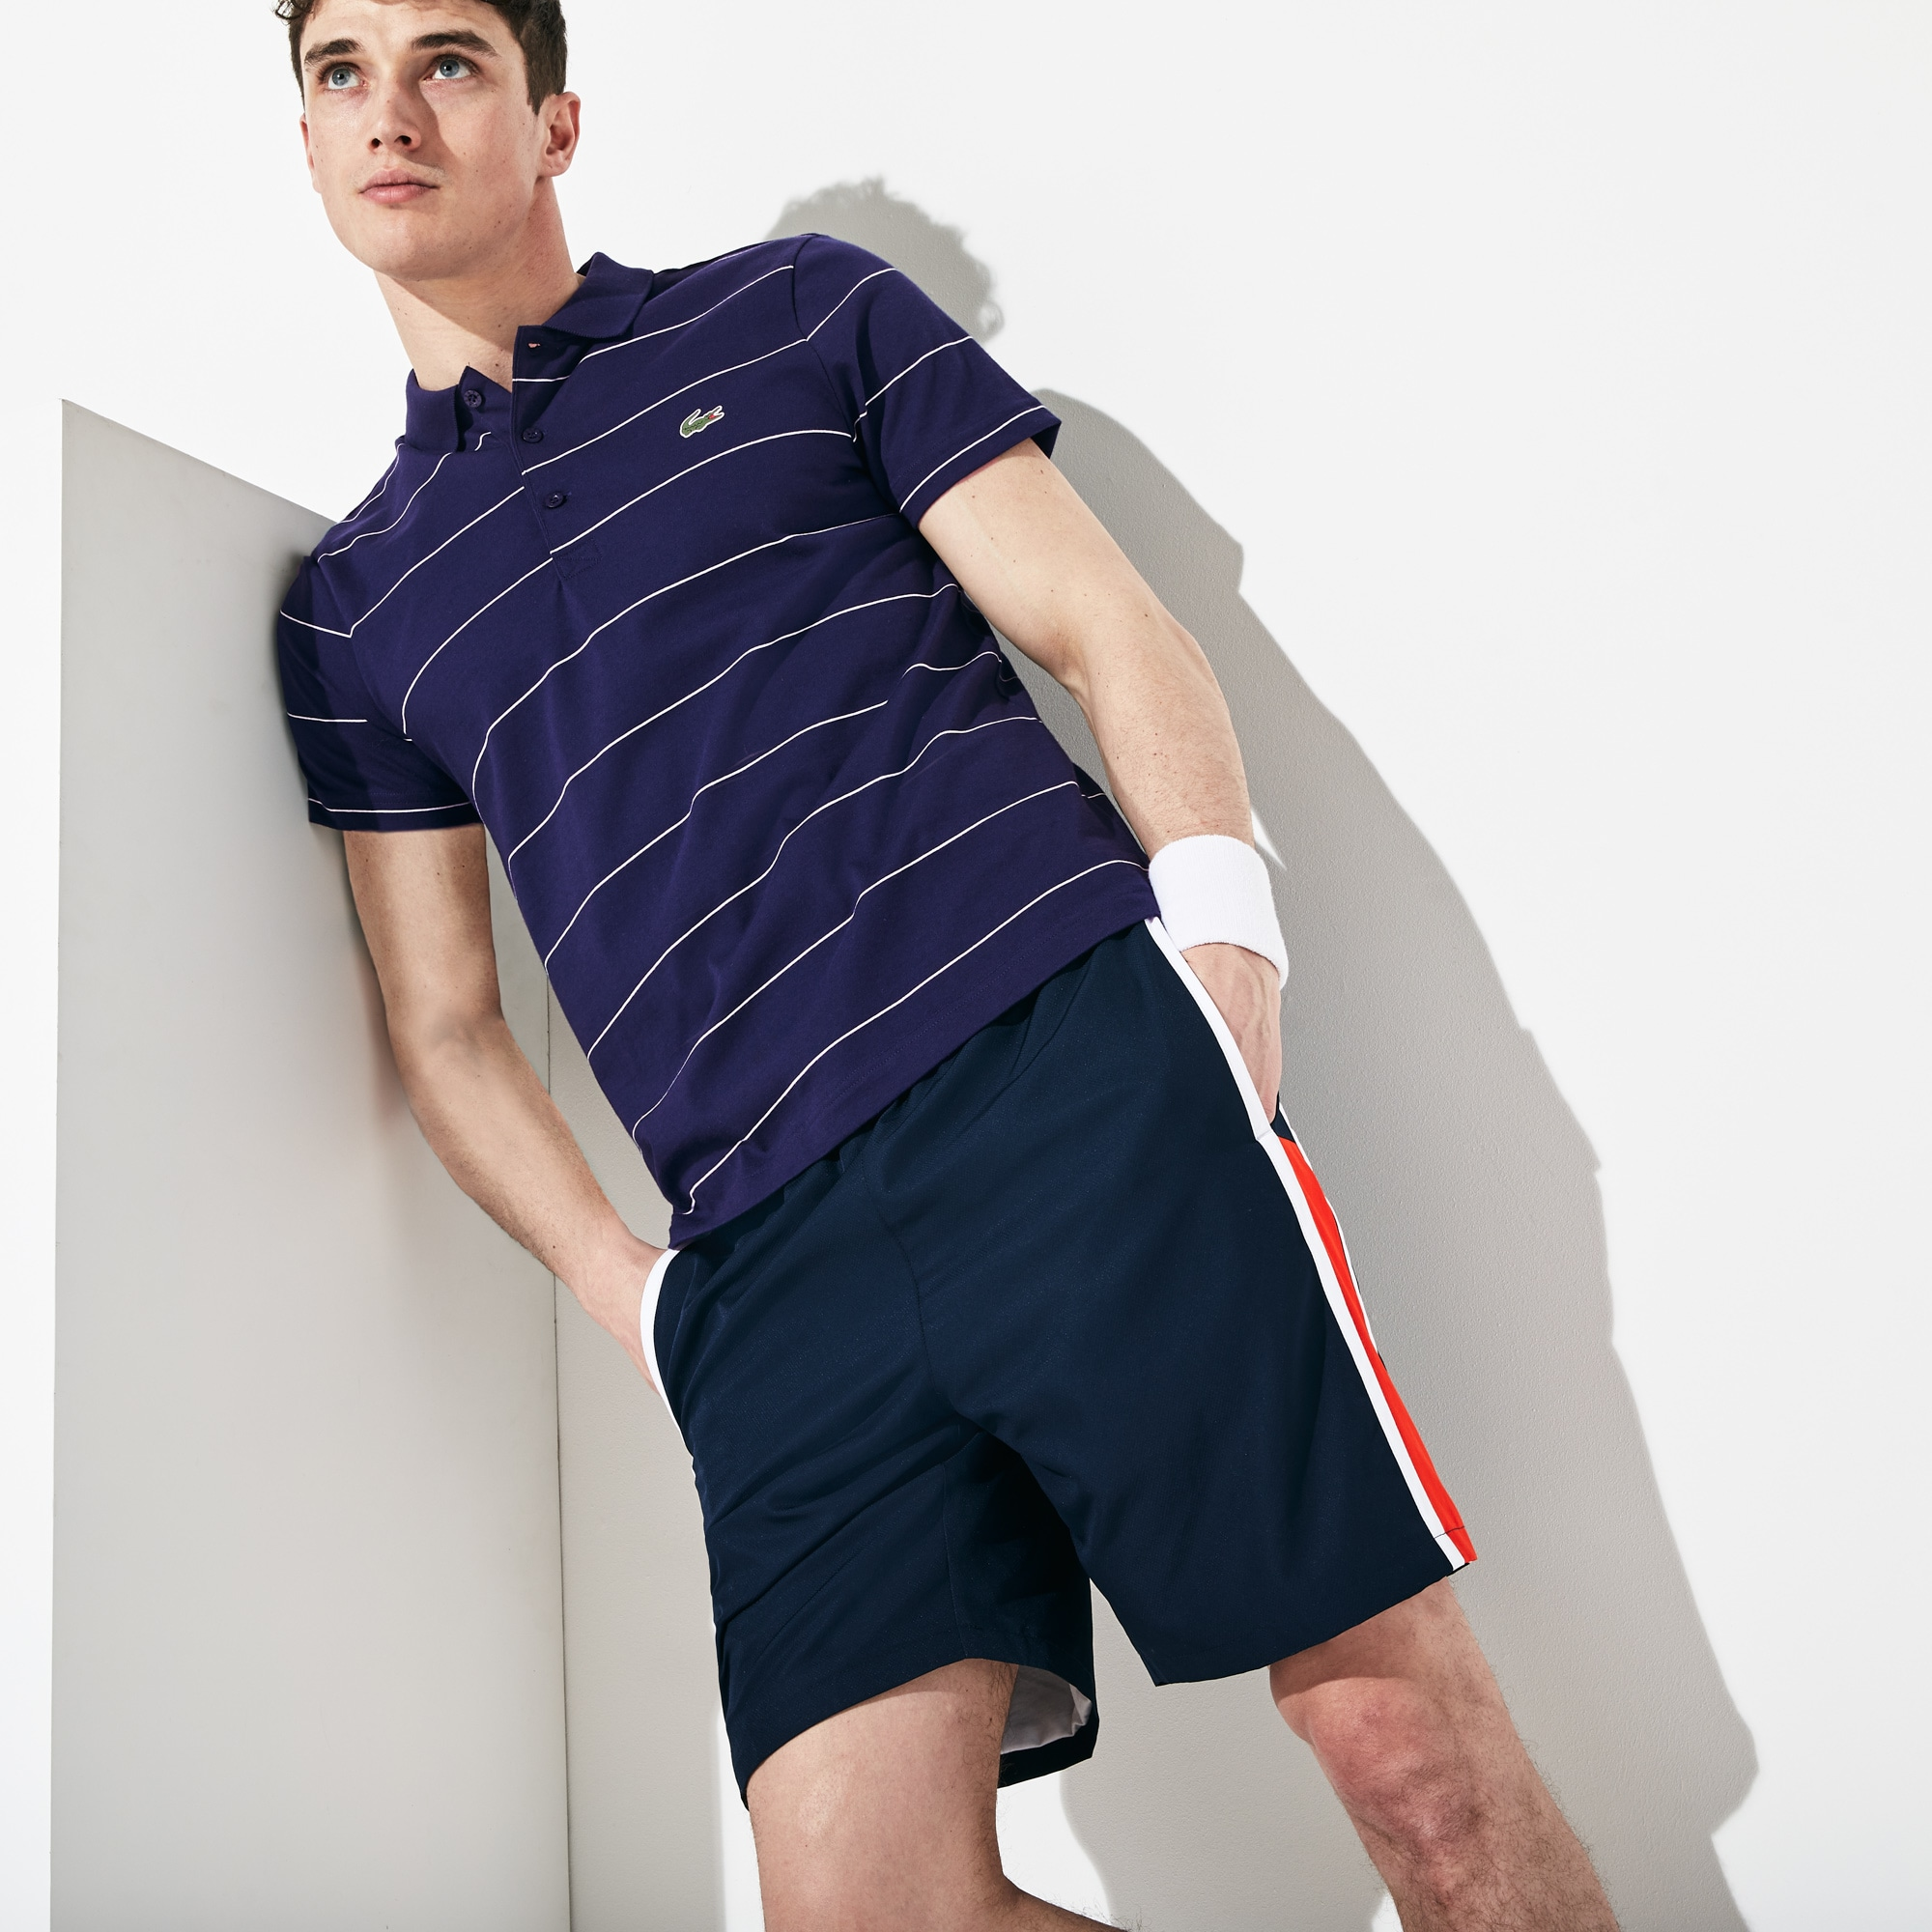 b679b9a9e34 Men's Lacoste SPORT Striped Technical Cotton Tennis Polo Shirt | LACOSTE